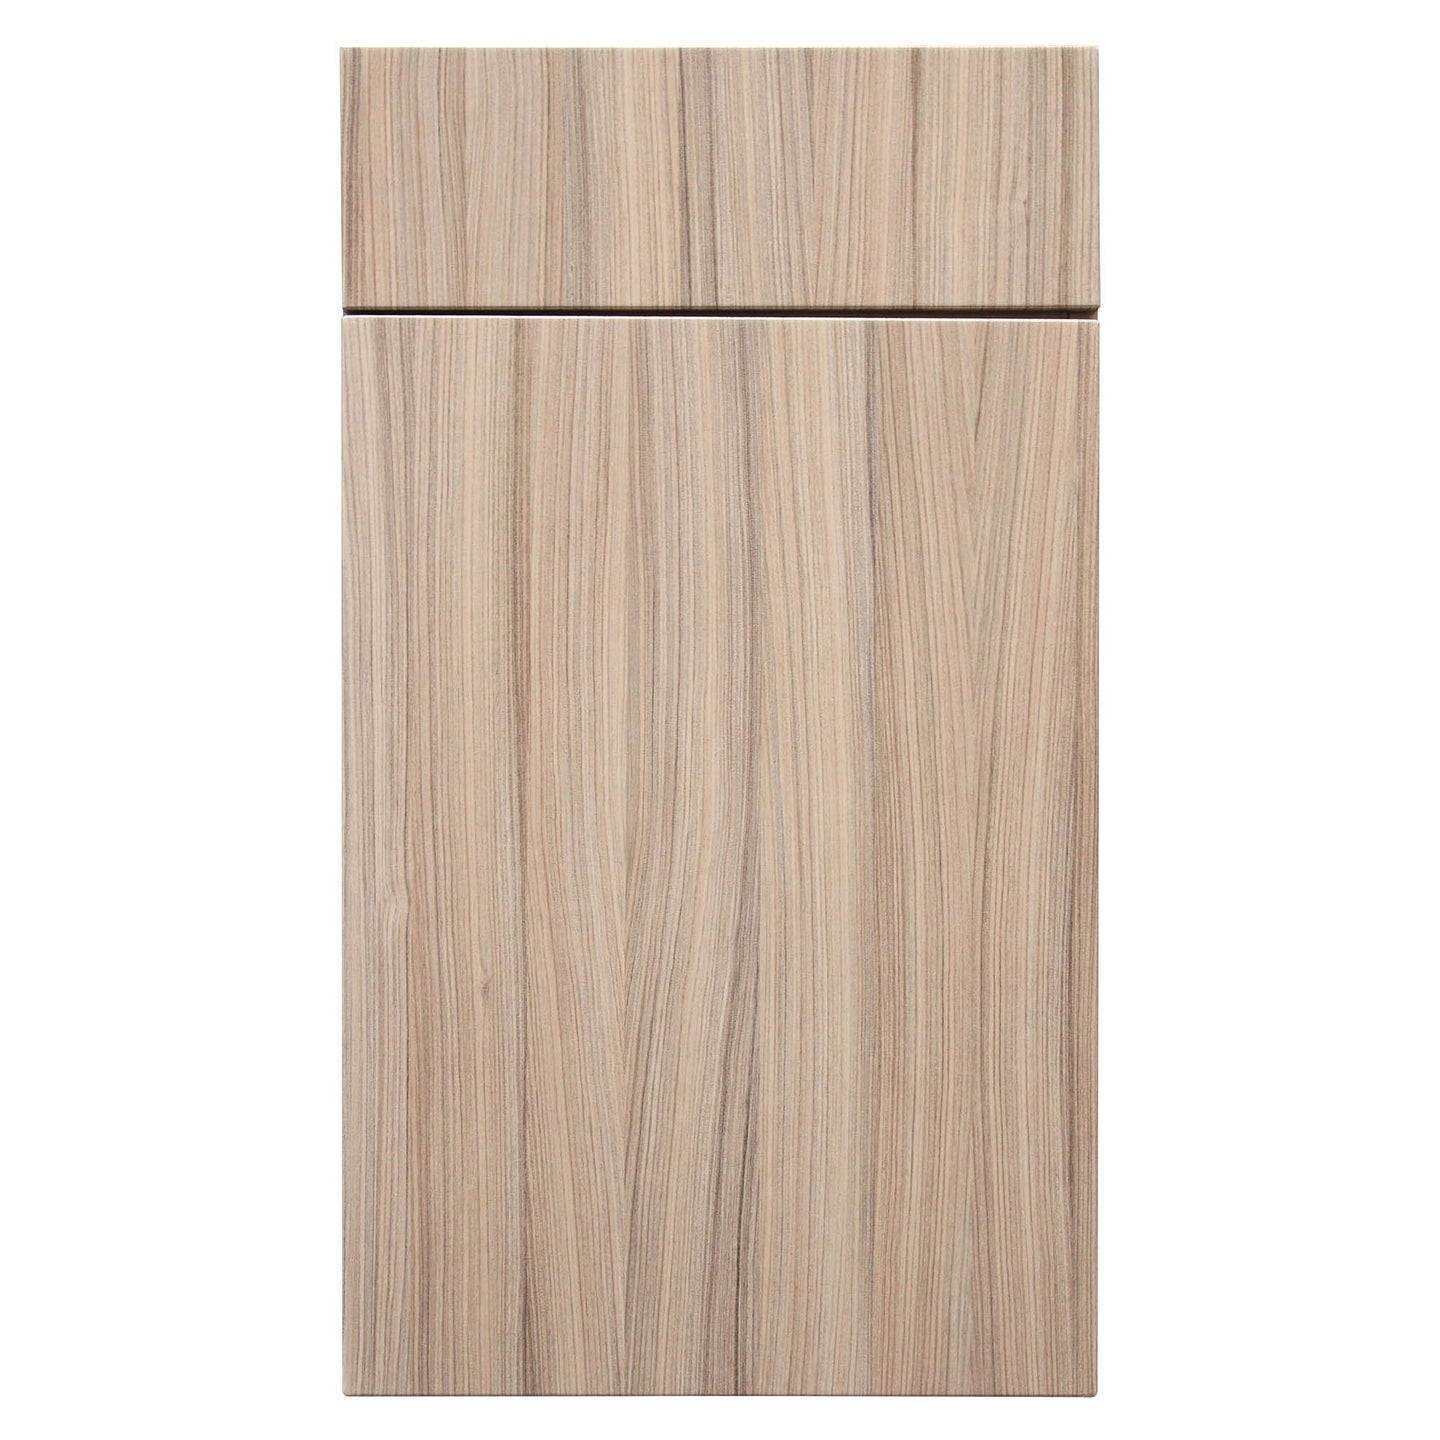 Driftwood Sand Wood Grain - Quality Kitchens For Less